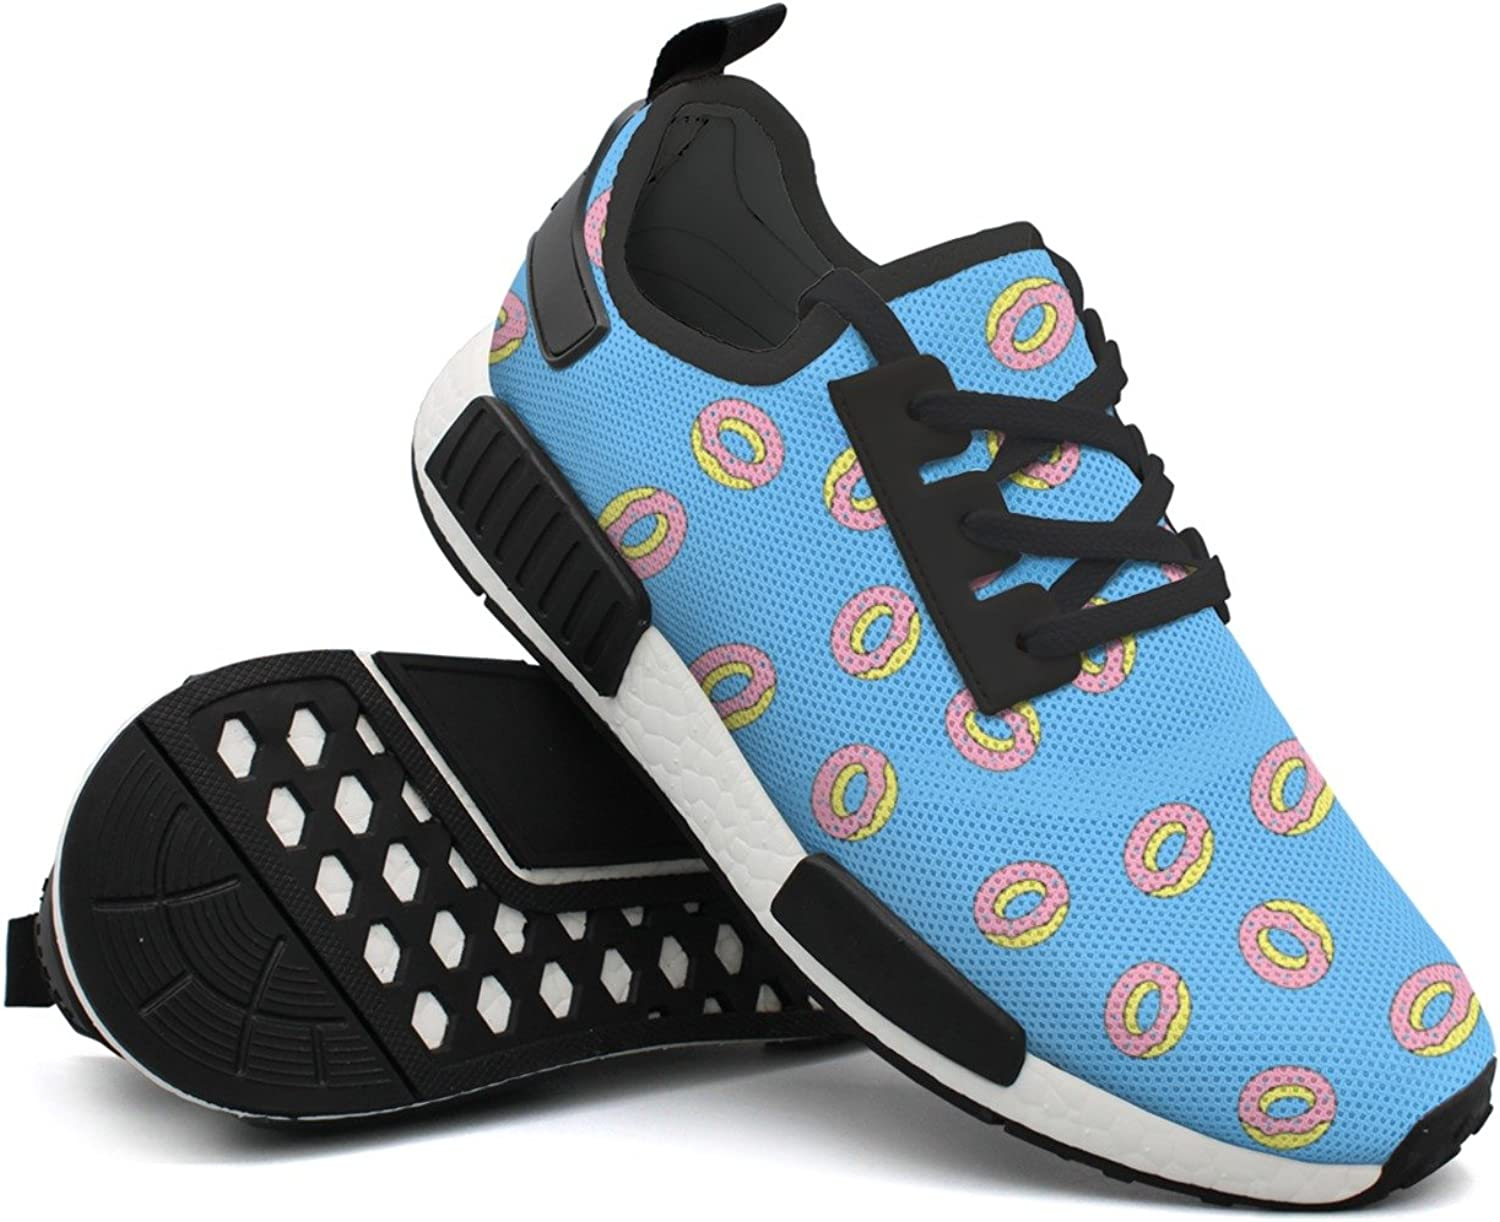 Fashion Sneaker For Men Donut Food Pattern Retro Lightweight Breathable Mesh Mens Tennis shoes